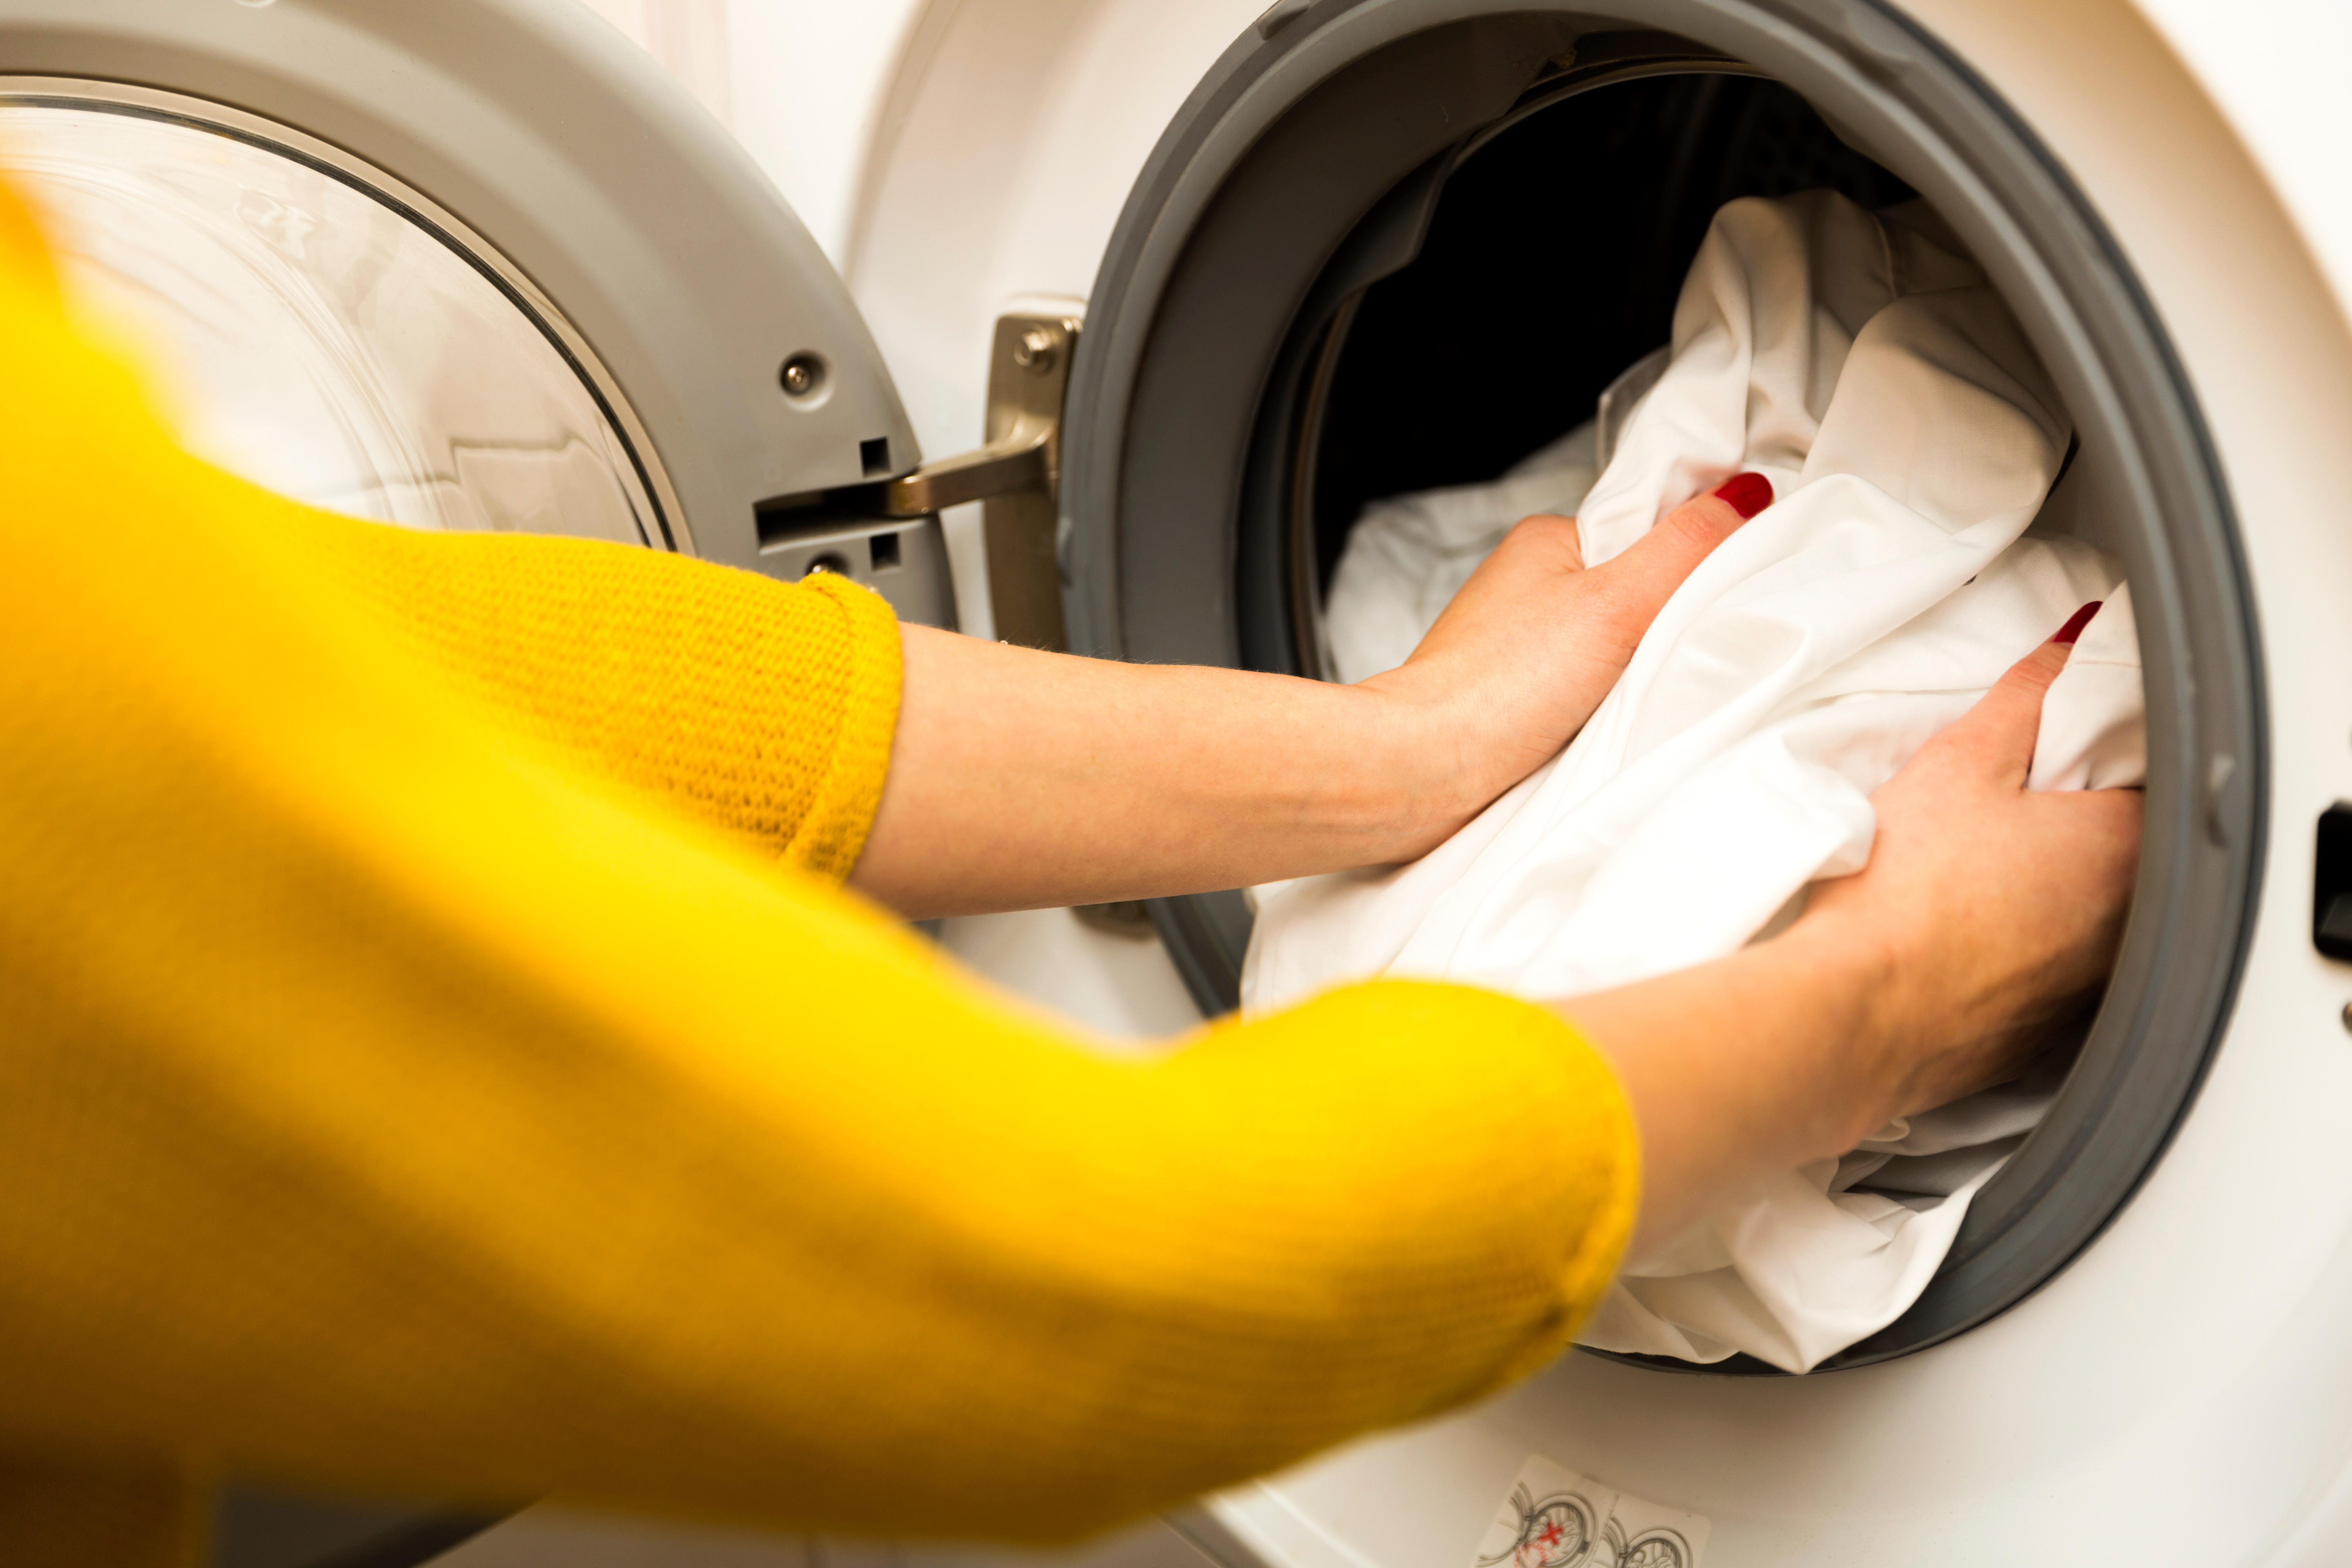 You can get the cost of washing your work uniform at home back through the Uniform Tax Rebate